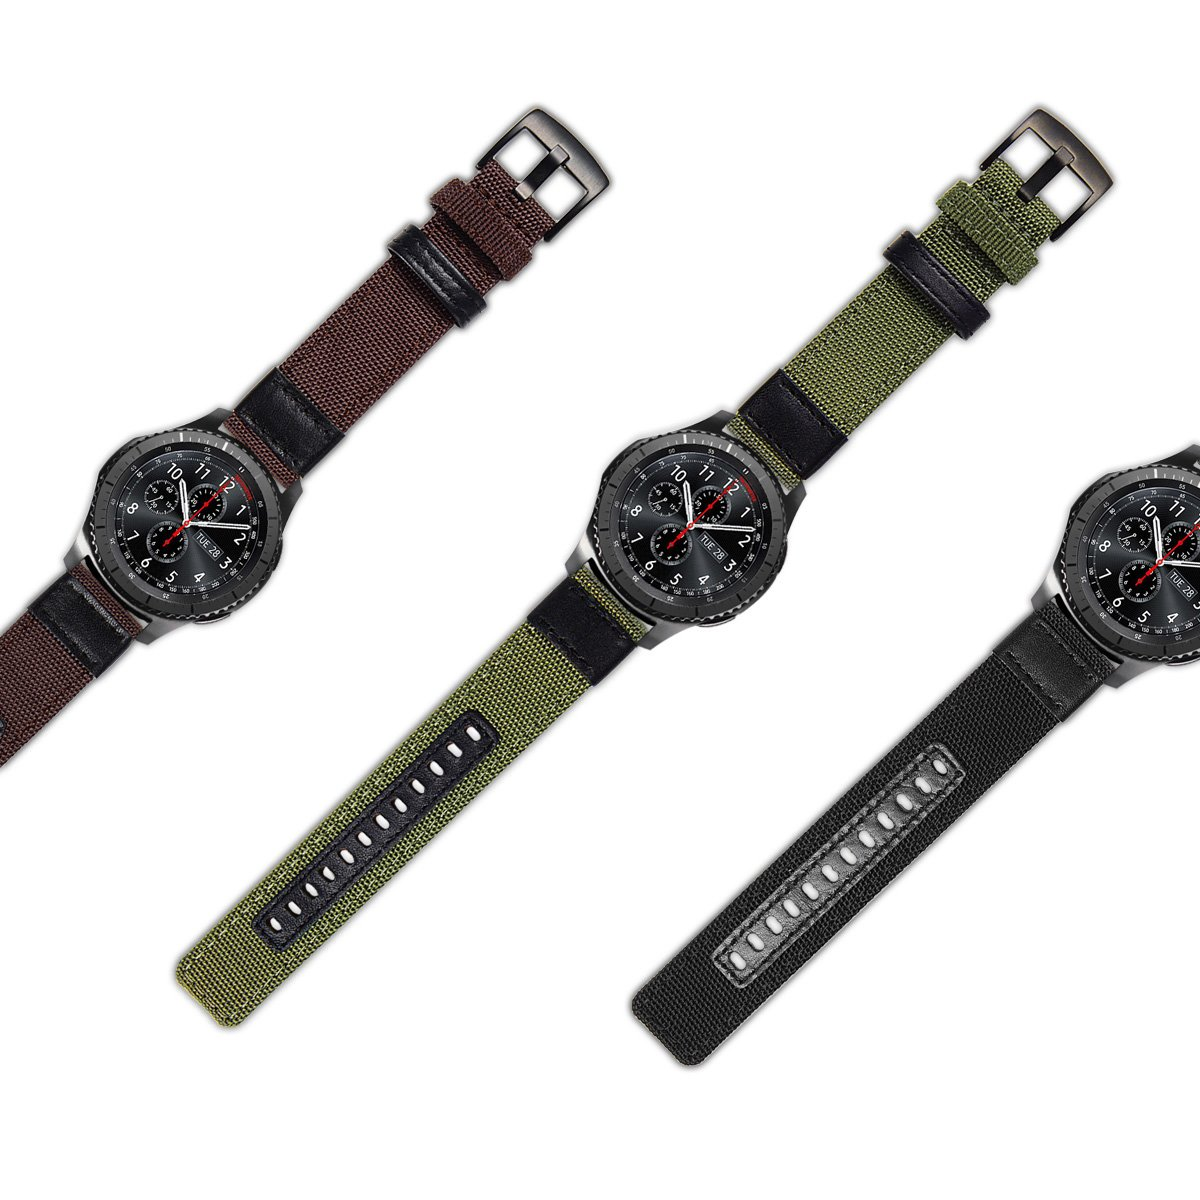 Gear S3 Bands Nylon, Maxjoy S3 Frontier Classic Band 22 mm Woven Nylon Replacement Strap Large Sport Wristband Bracelet with Stainless Steel Metal Buckle for Samsung Gear S3 Smart Watch, Army Green by Maxjoy (Image #7)